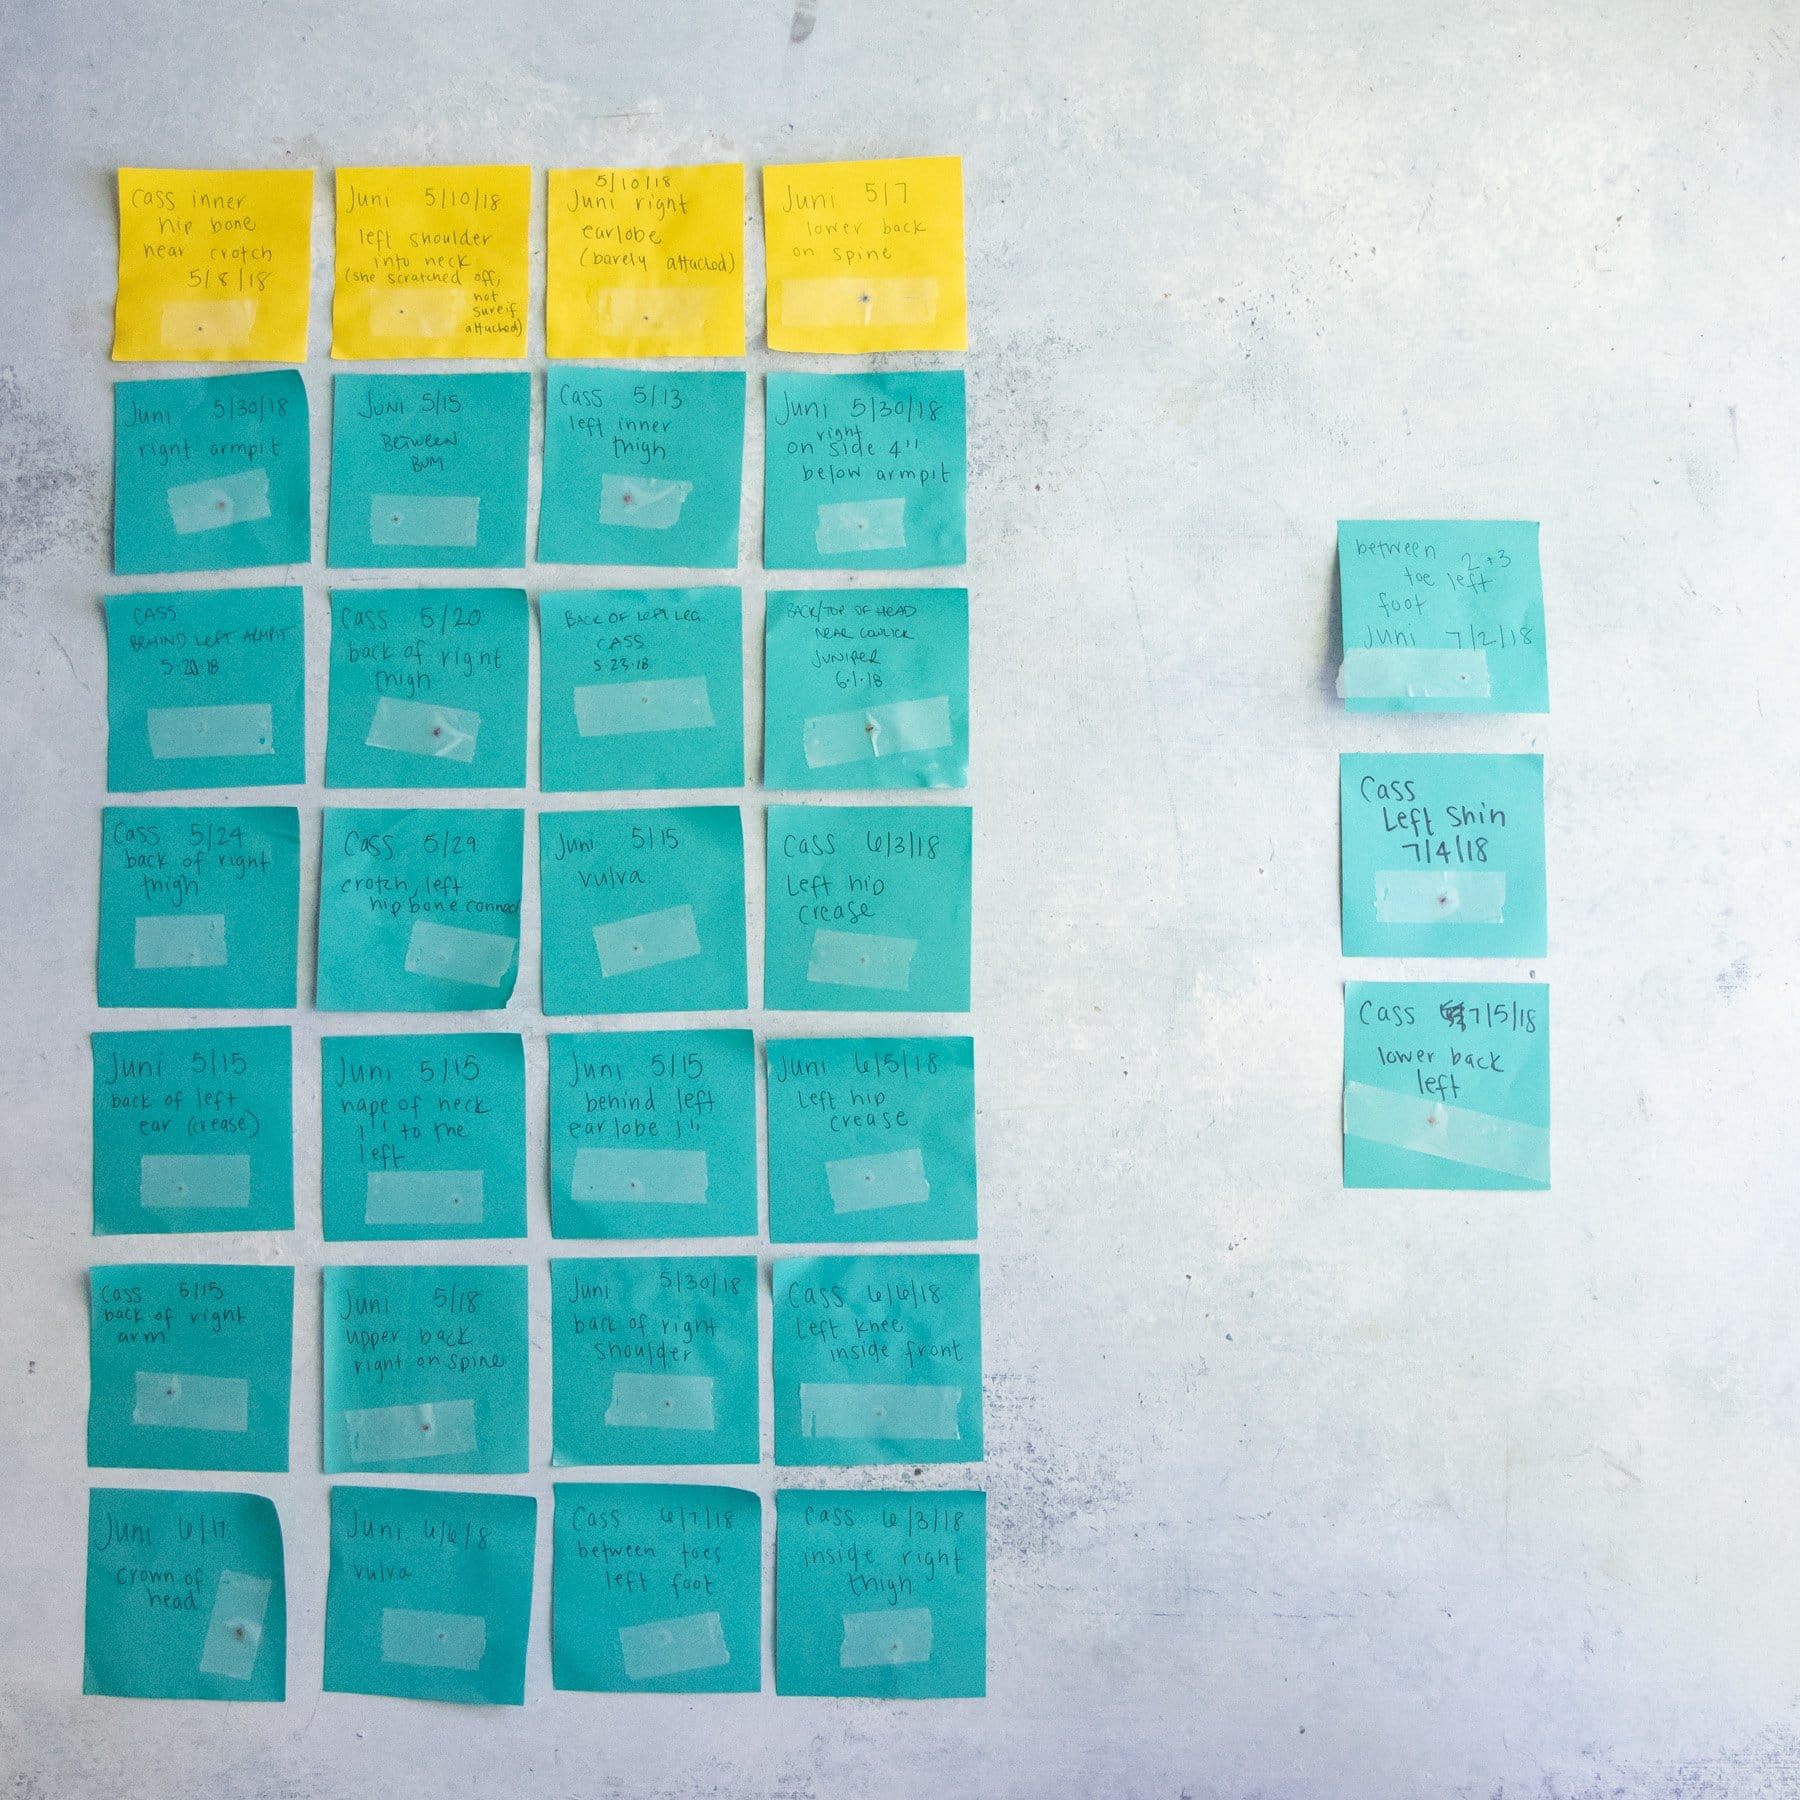 Yellow and teal Post-Its on a wall, labeled with dates and names of tick bites